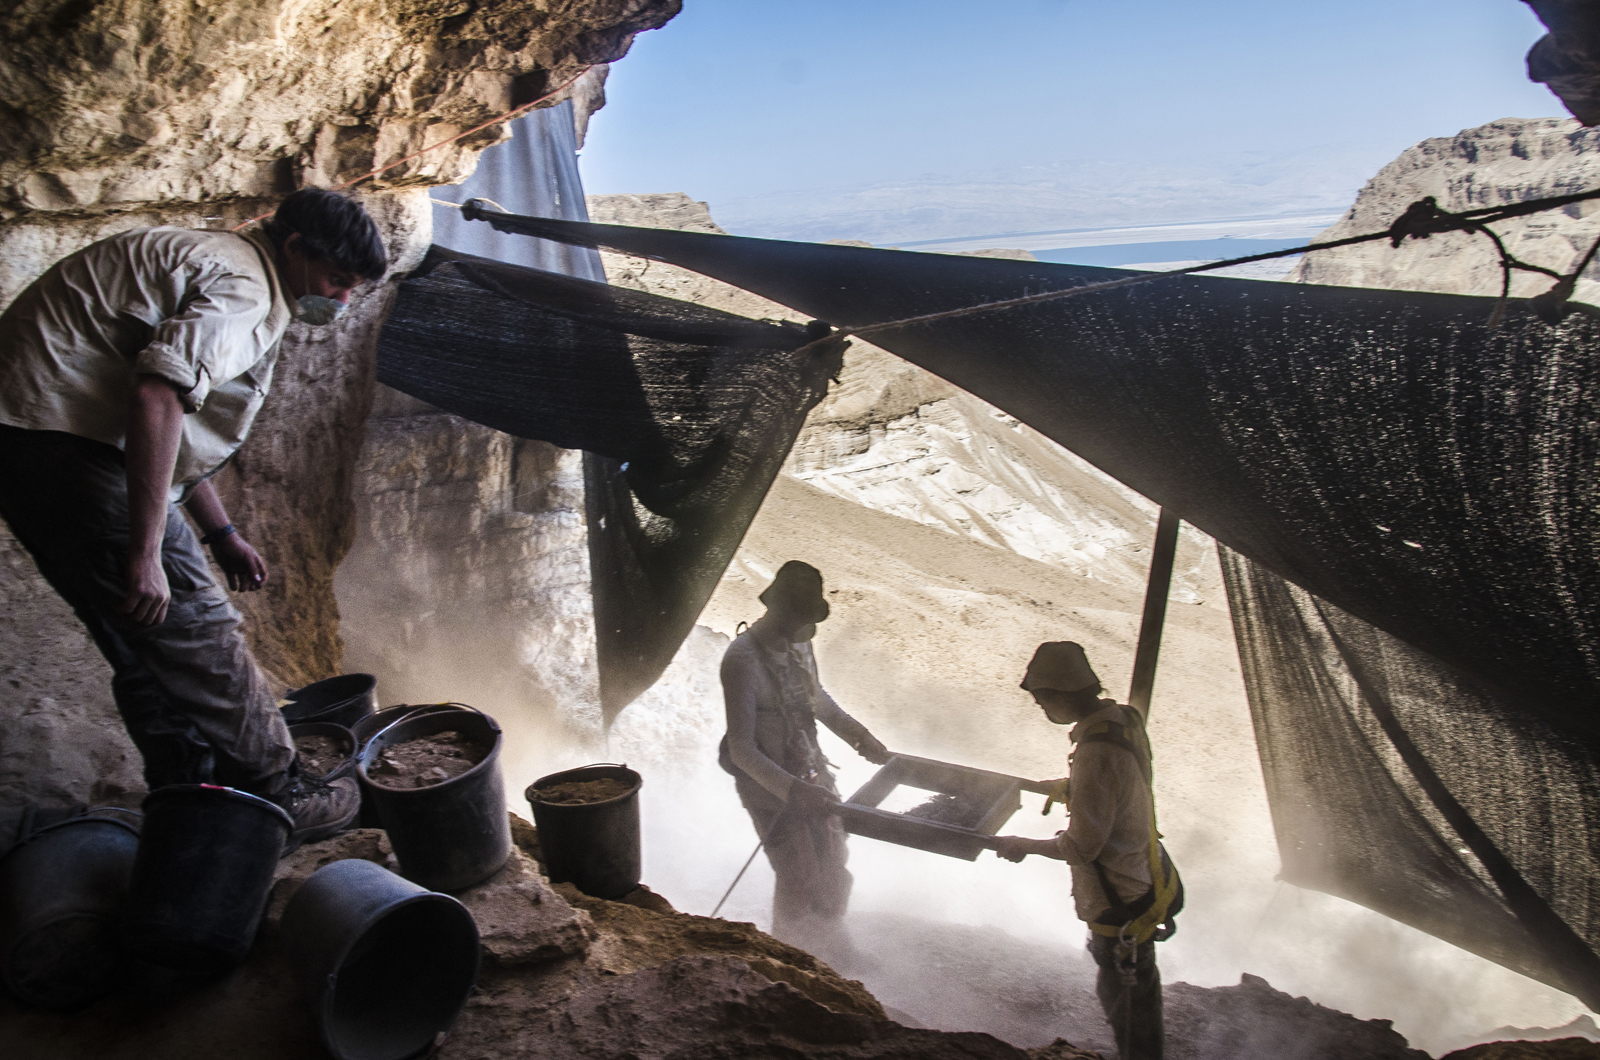 Israel Antiquities Authority has been conducting an archaeological excavation in search of ancient artifacts in the Cave of the Skulls in the Judean Desert. Photo by Yoli Shwartz, courtesy of the Israel Antiquities Authority.